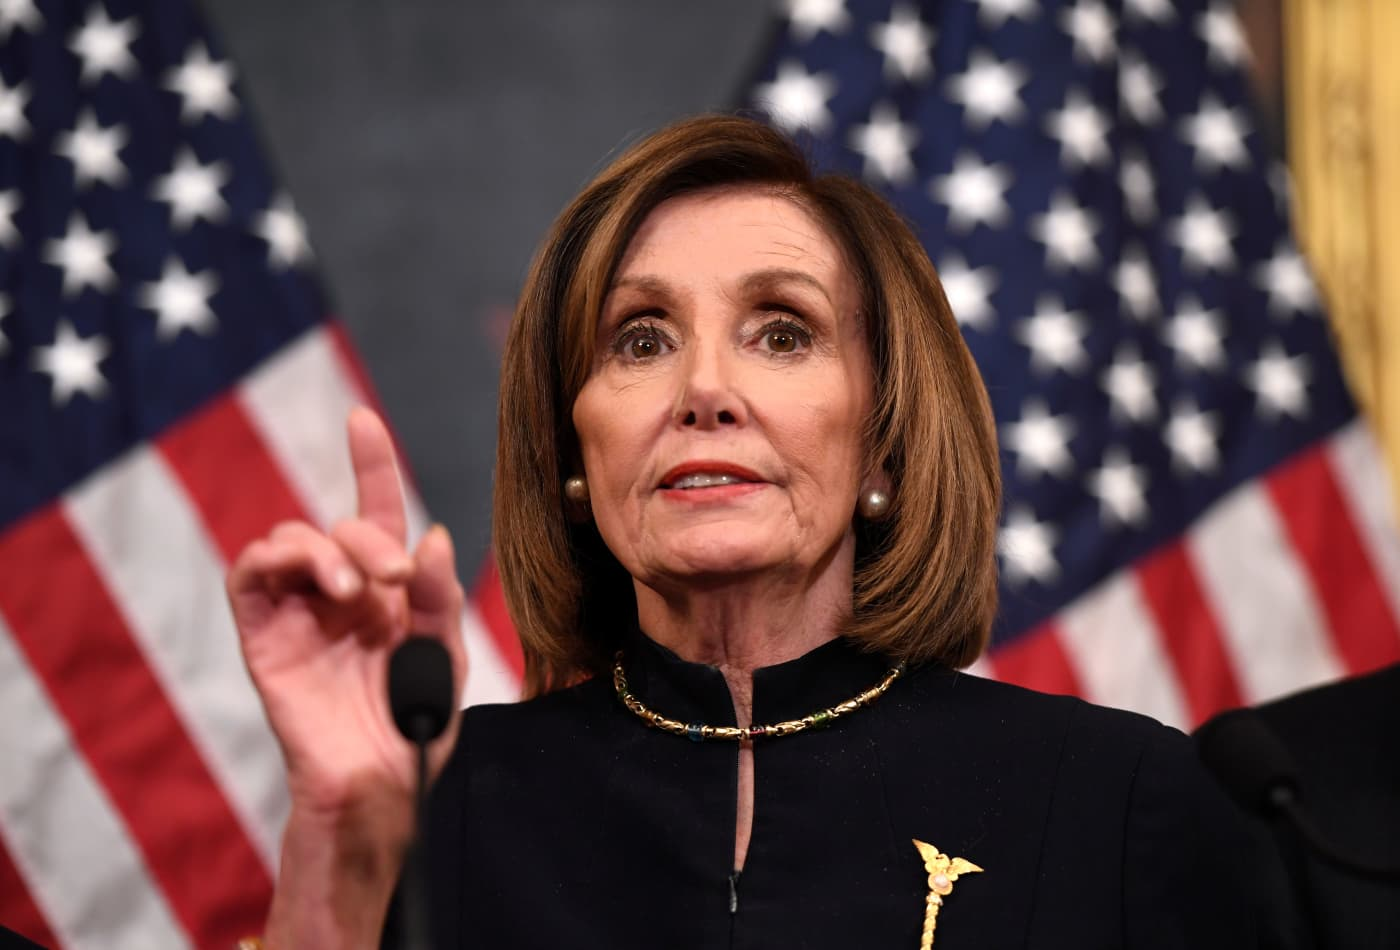 Pelosi's best move might be to keep impeachment in her pocket and not send it to the Senate